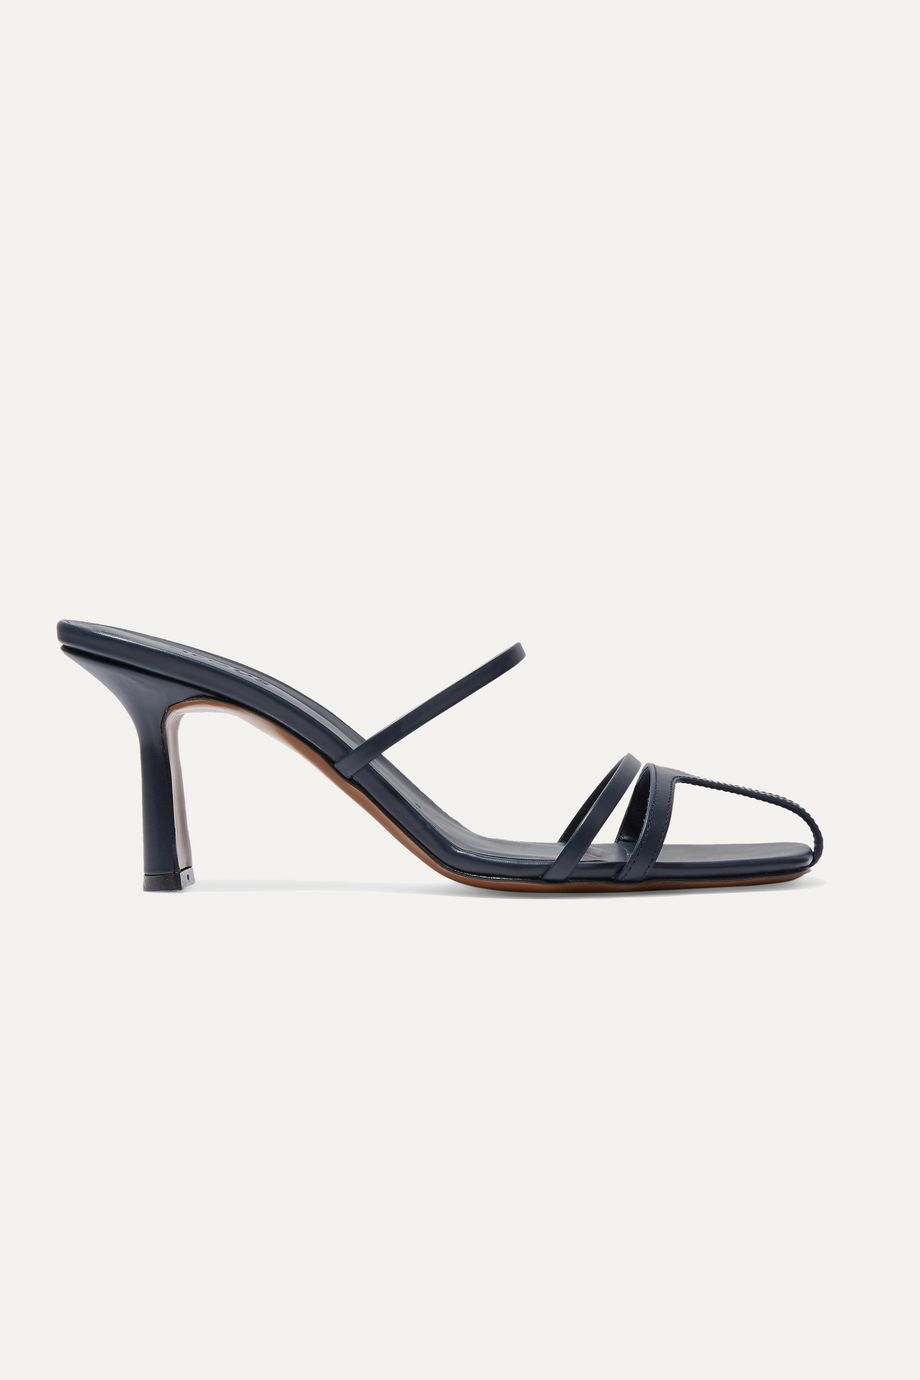 Neous Veki leather sandals